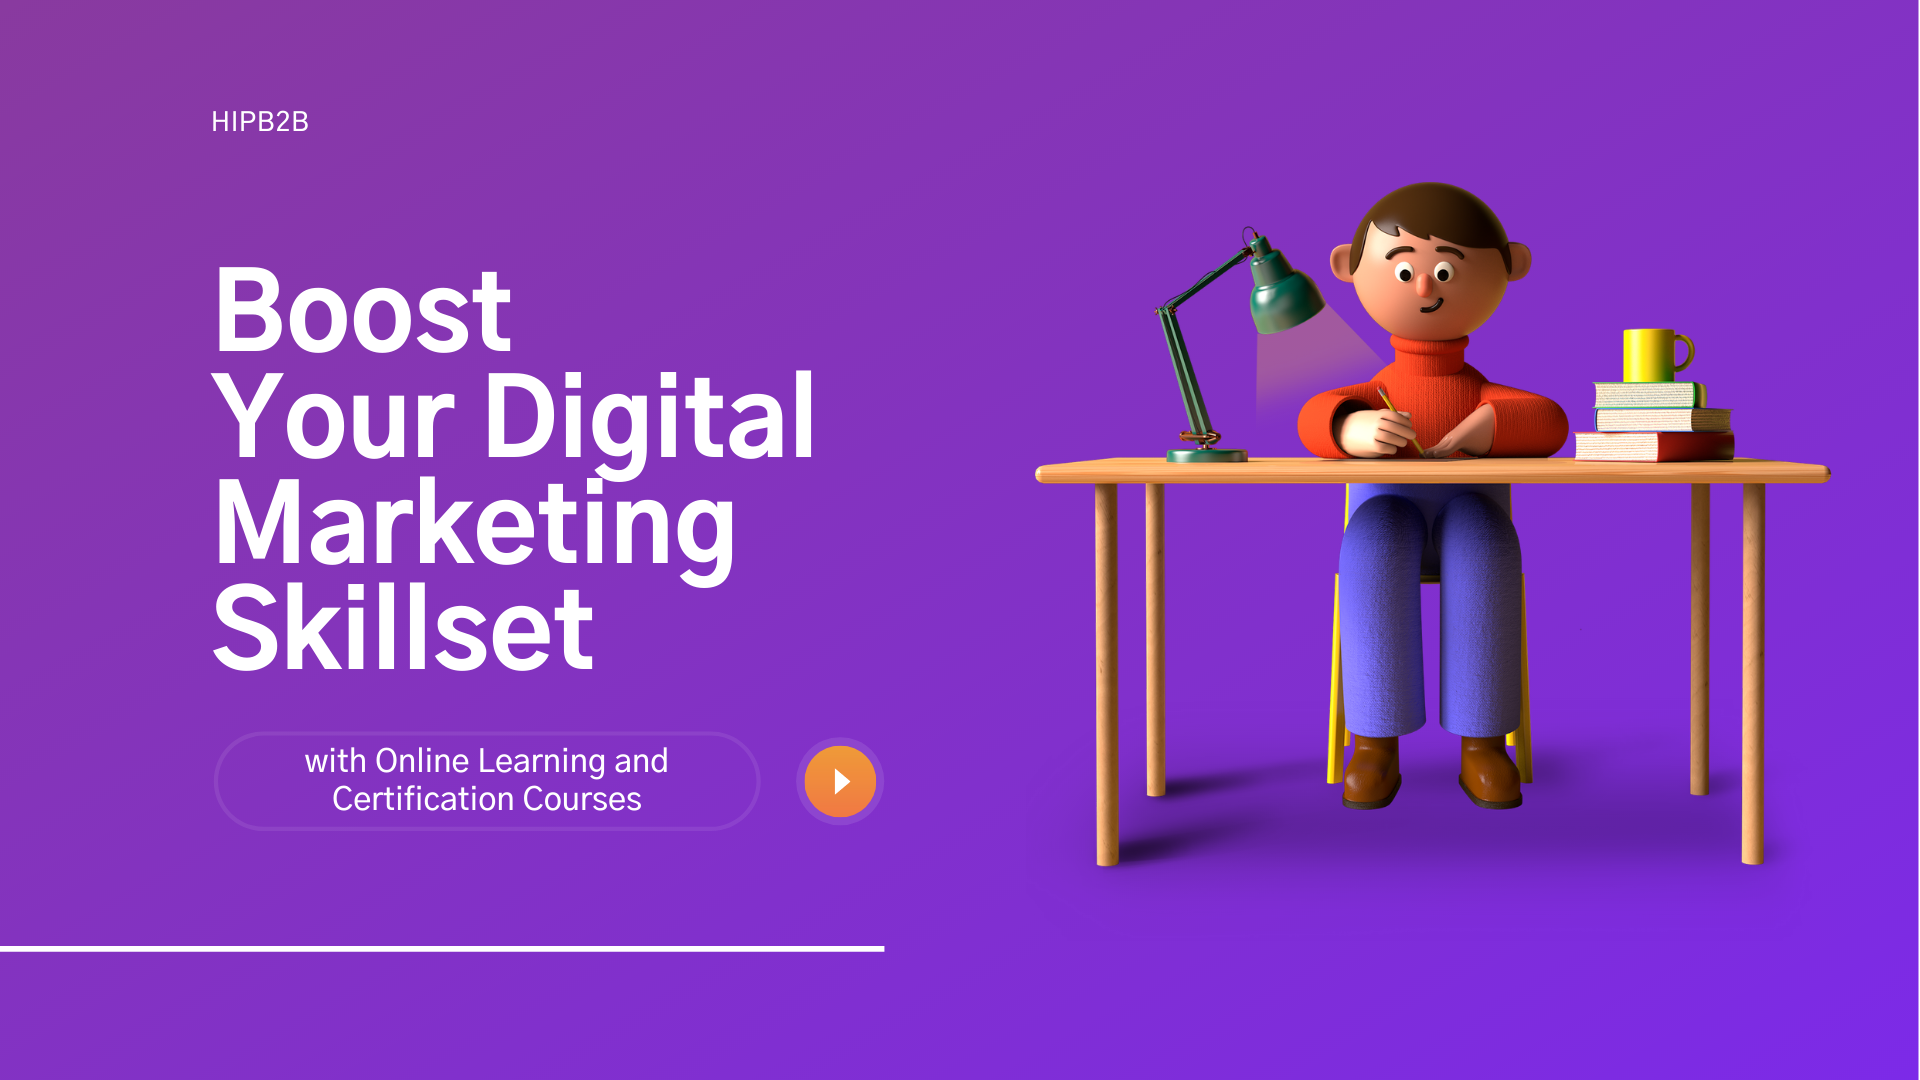 Boost Your Digital Marketing Skillset Online Learning and